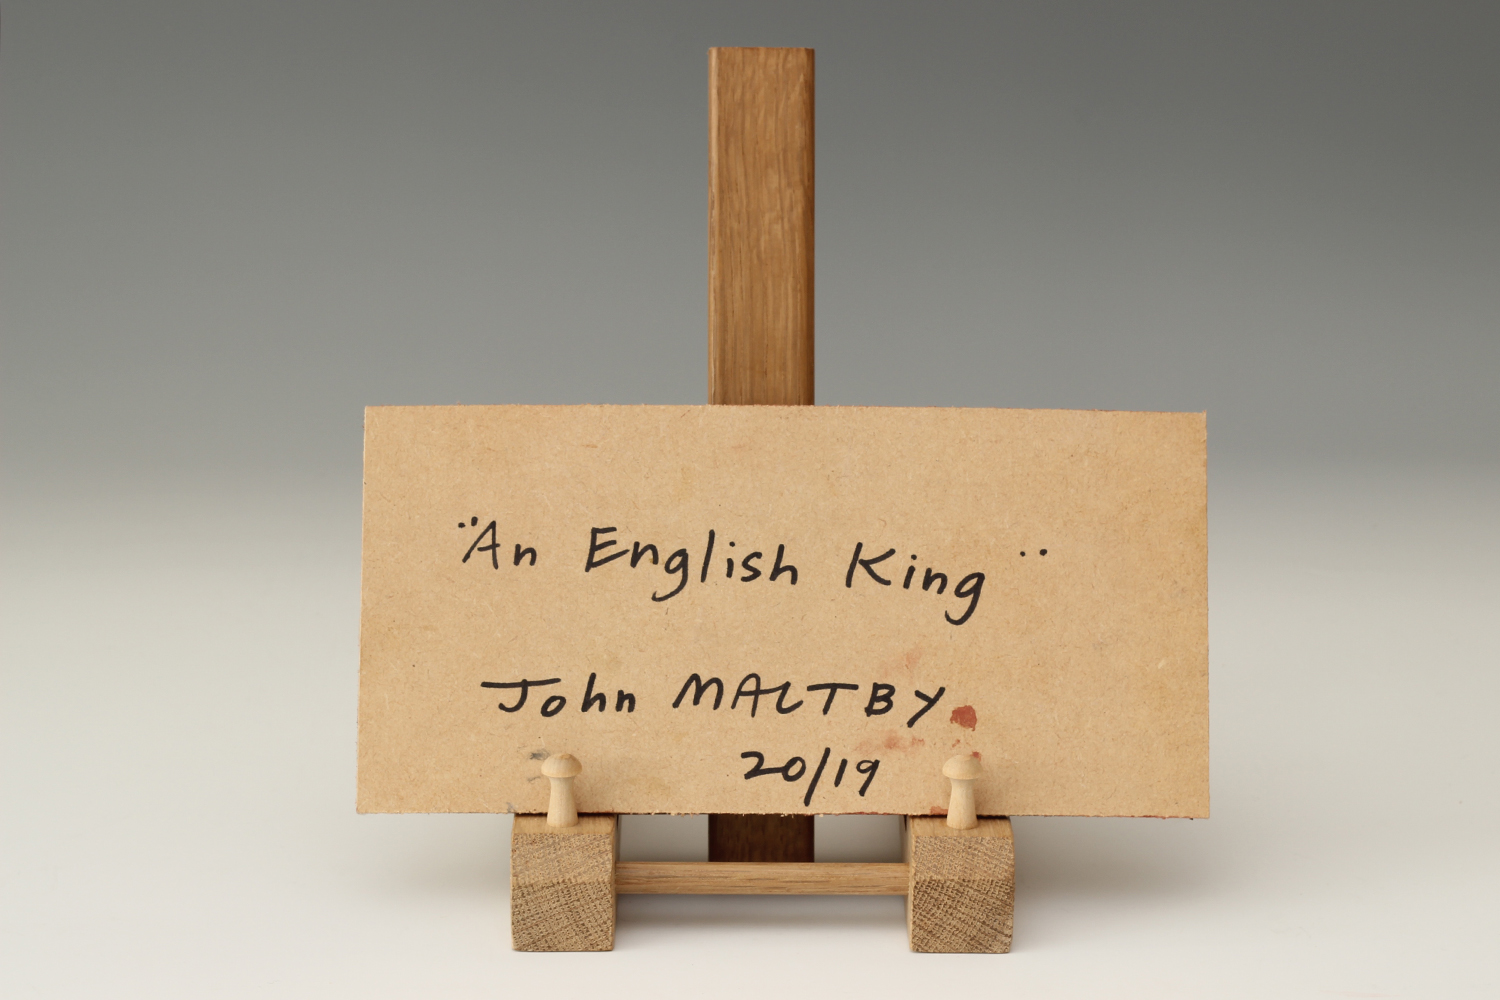 John Maltby Plaque of 'An English King' 09